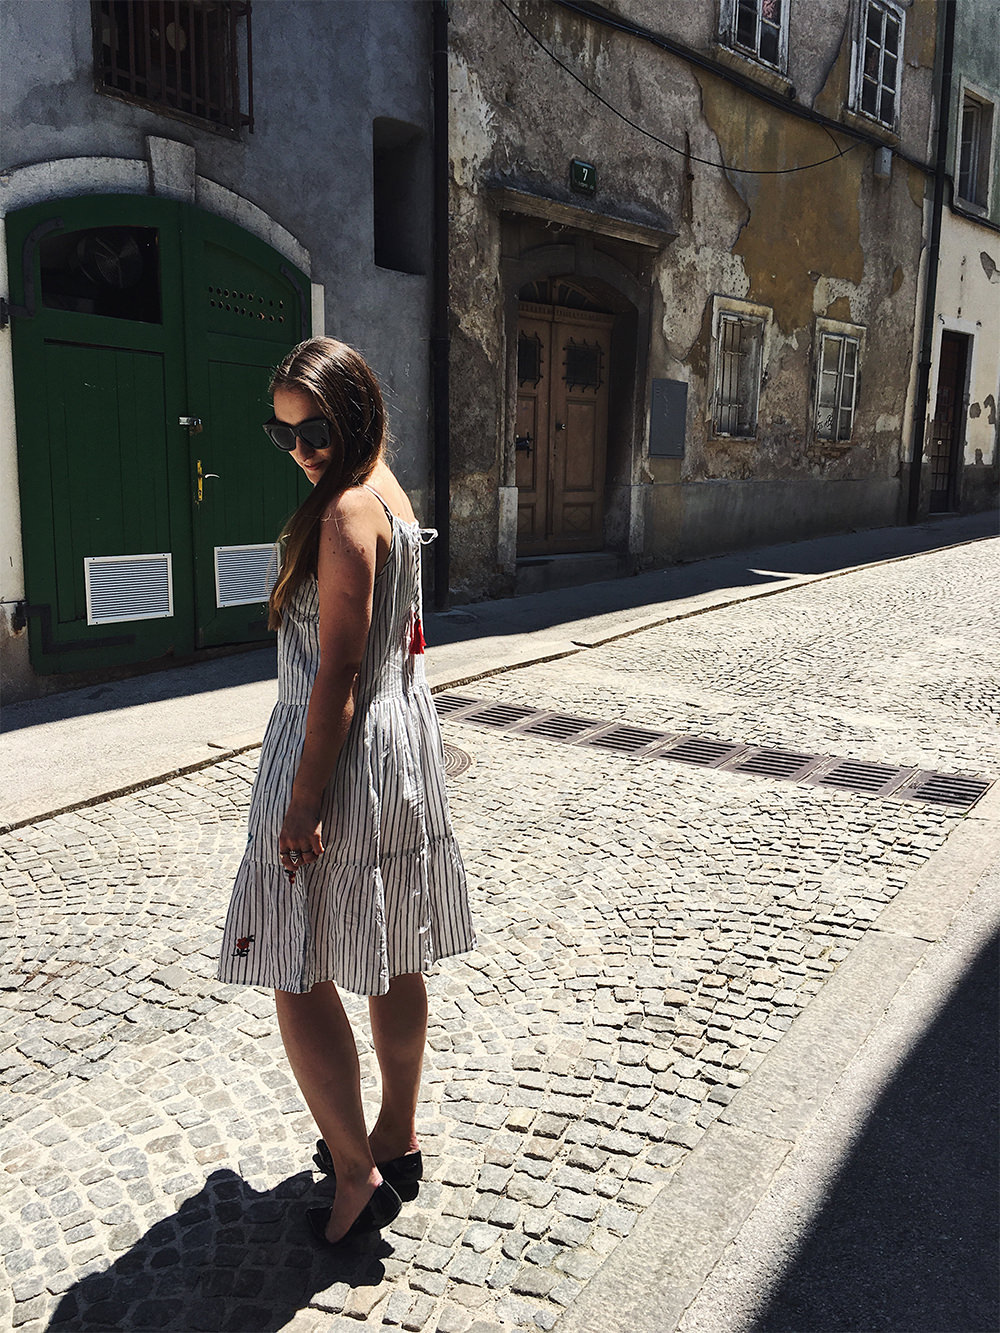 pelamarela, blogger, lifestyle, personal, fashion, outfit, summer vibe, summer, life